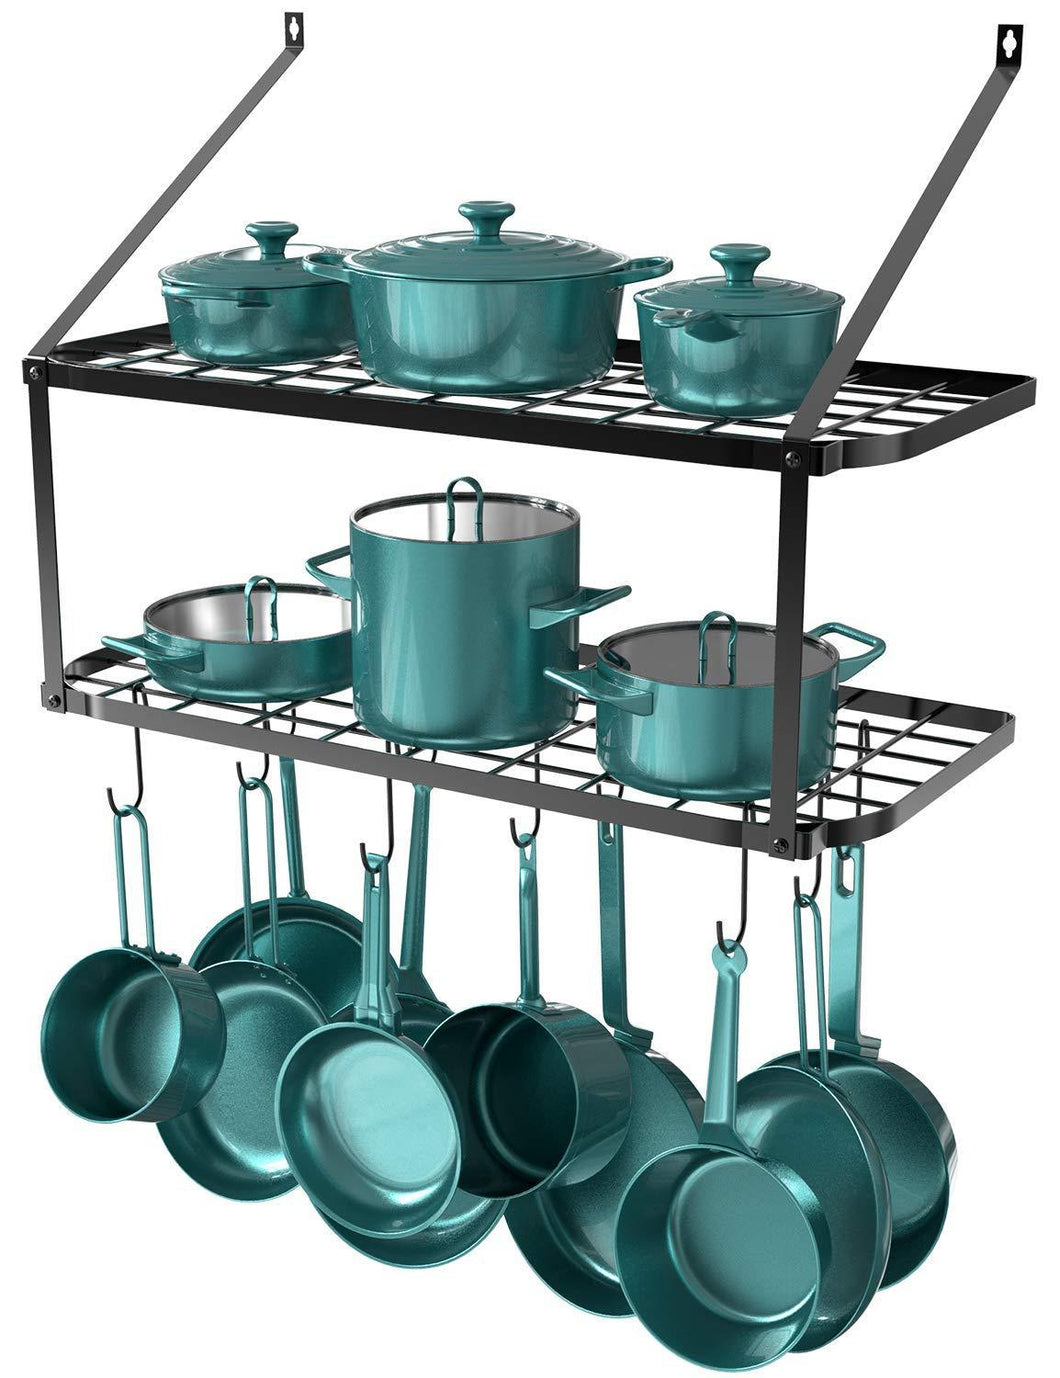 New geekdigg 29 5 inch wall mounted pot rack storage shelf with 2 tier 10 hooks included kitchen pot racks hanging storage organizer black